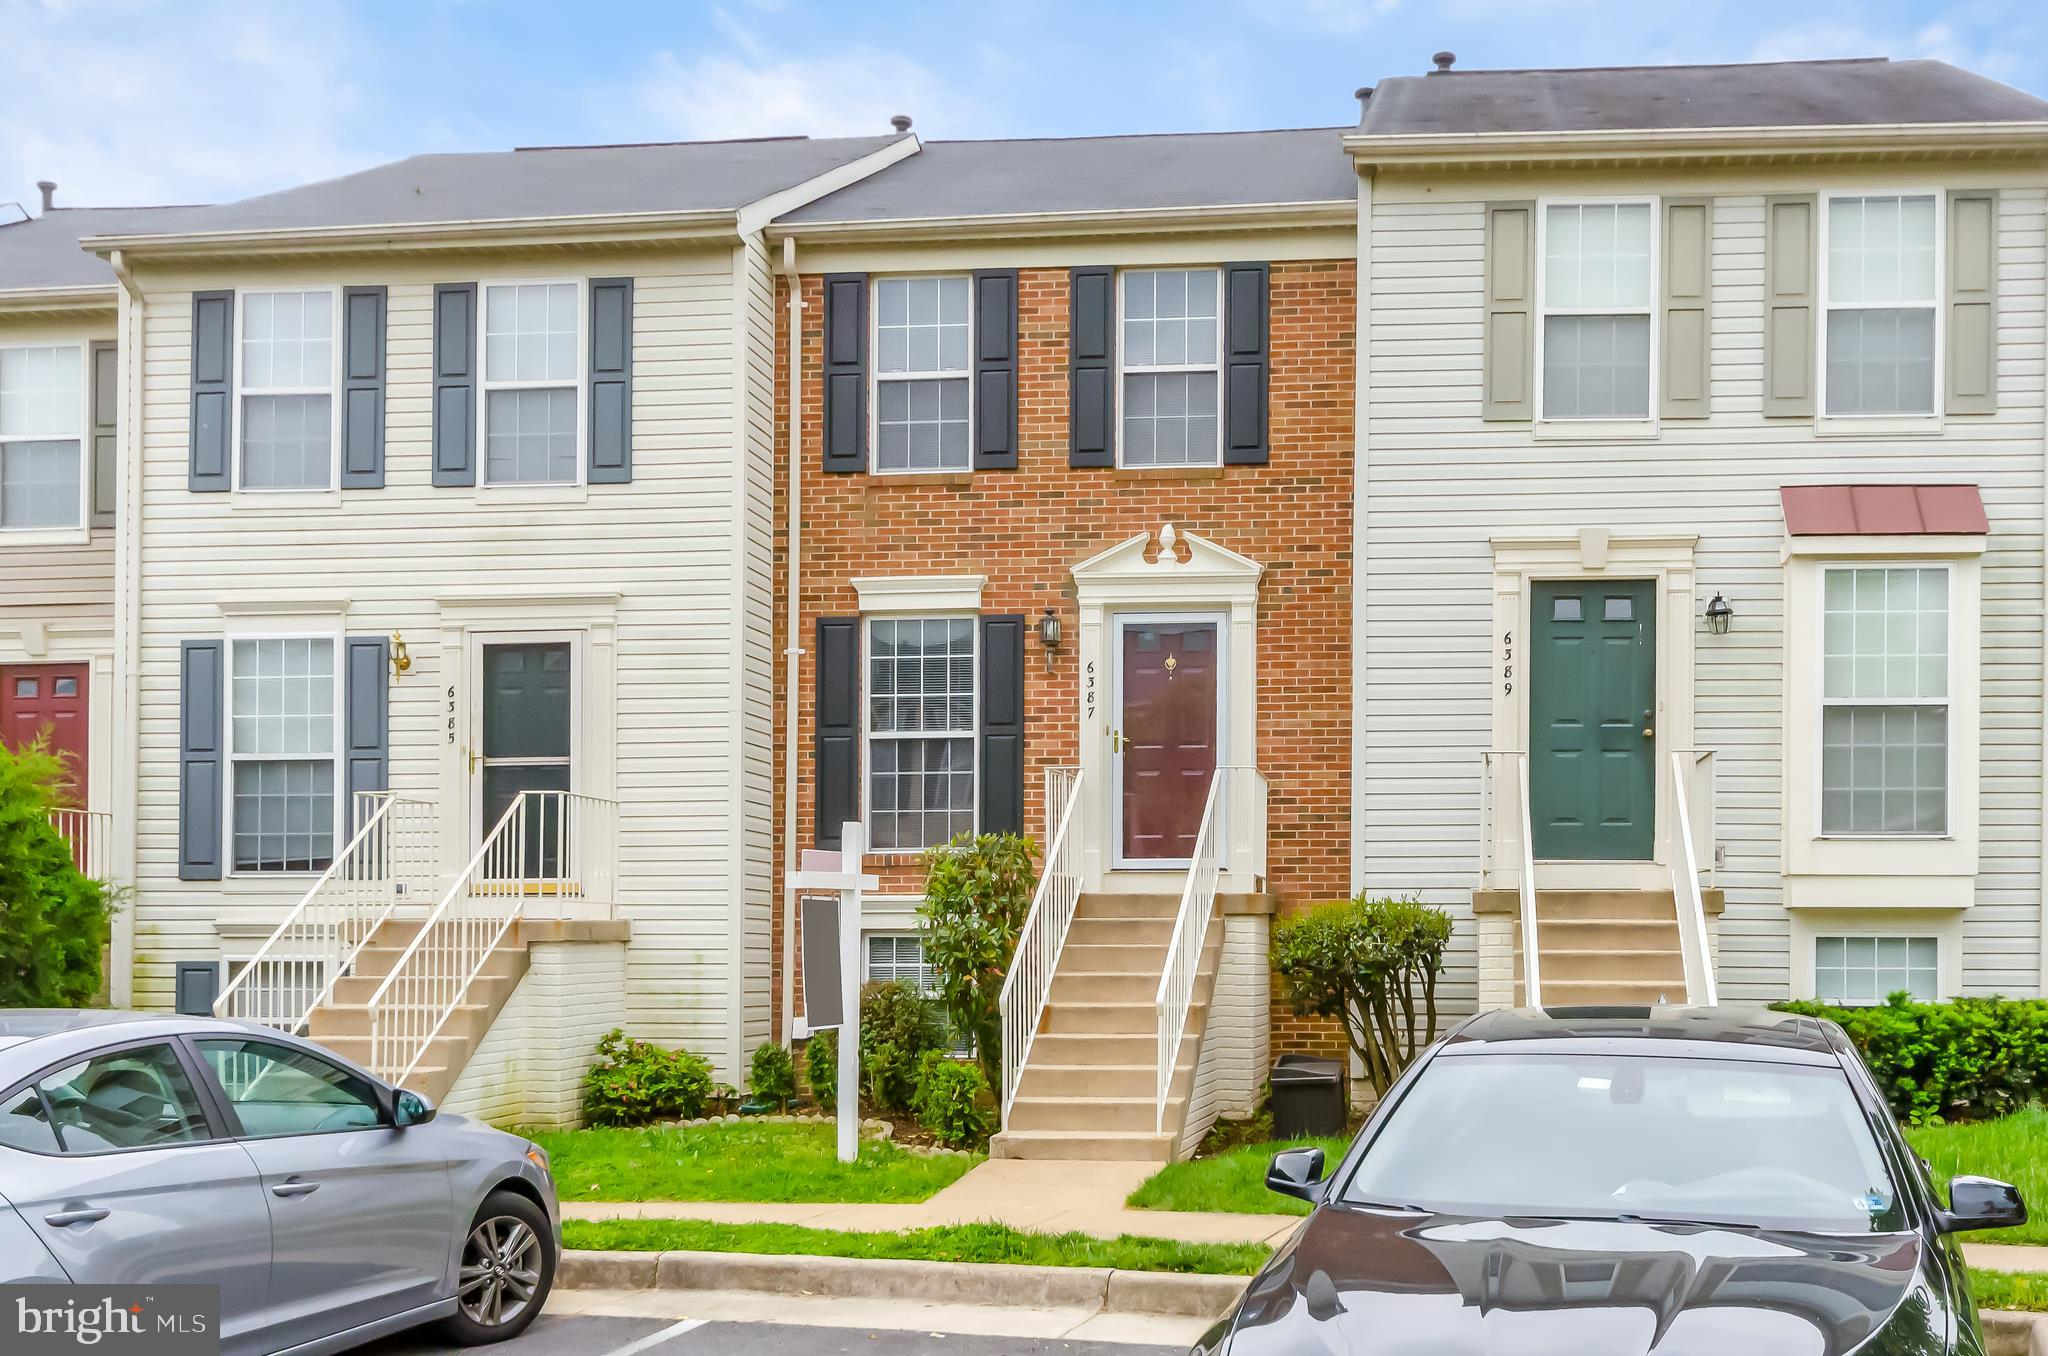 """Wonderful brick front townhome in the wanted neighborhood of GreenWood. Amazing location, walking distance to Franconia/Springfield metro or take the free Shuttle bus! Close to main 95/495 archeries. This home sparkles as a turn key home and has been meticulously cared for by the current owners of 15 years, it is ready for it's new owners to enjoy all of their care and updates. Recently renovated with new carpet/floors, updated bathrooms, freshly stained deck along with granite and ss Kitchen appliances. The walk out basement with new floor offers a large area for entertaining/relaxing but there is also space and is already """"plumbed"""" to add another bathroom if preferred, along with a large closet it can be used as a large bedroom instead-endless options available. Do not miss your opportunity to secure the perfect home/investment priced at over $13,000 less than the Zillow estimate. Open homes Sat/Sun 18/19th May with all offers (if suitable) reviewed at 5.0pm Tuesday 21st May."""